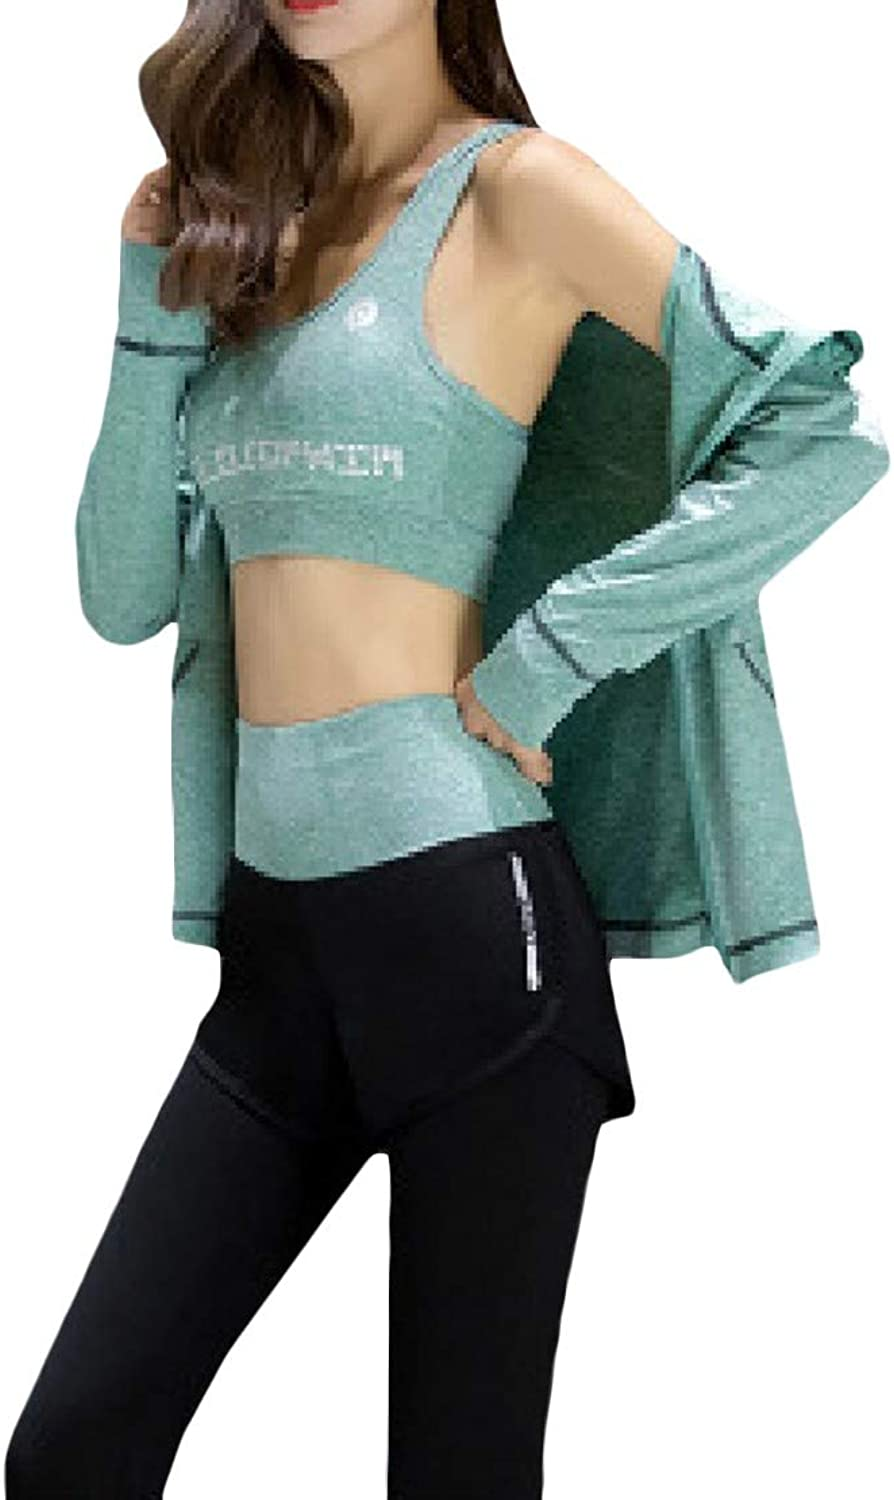 TaoNice Womens Cool Dry Casual LongSleeve Spring Gym Activewear Summer Running Sports Sports Activewear Set Top&Pants